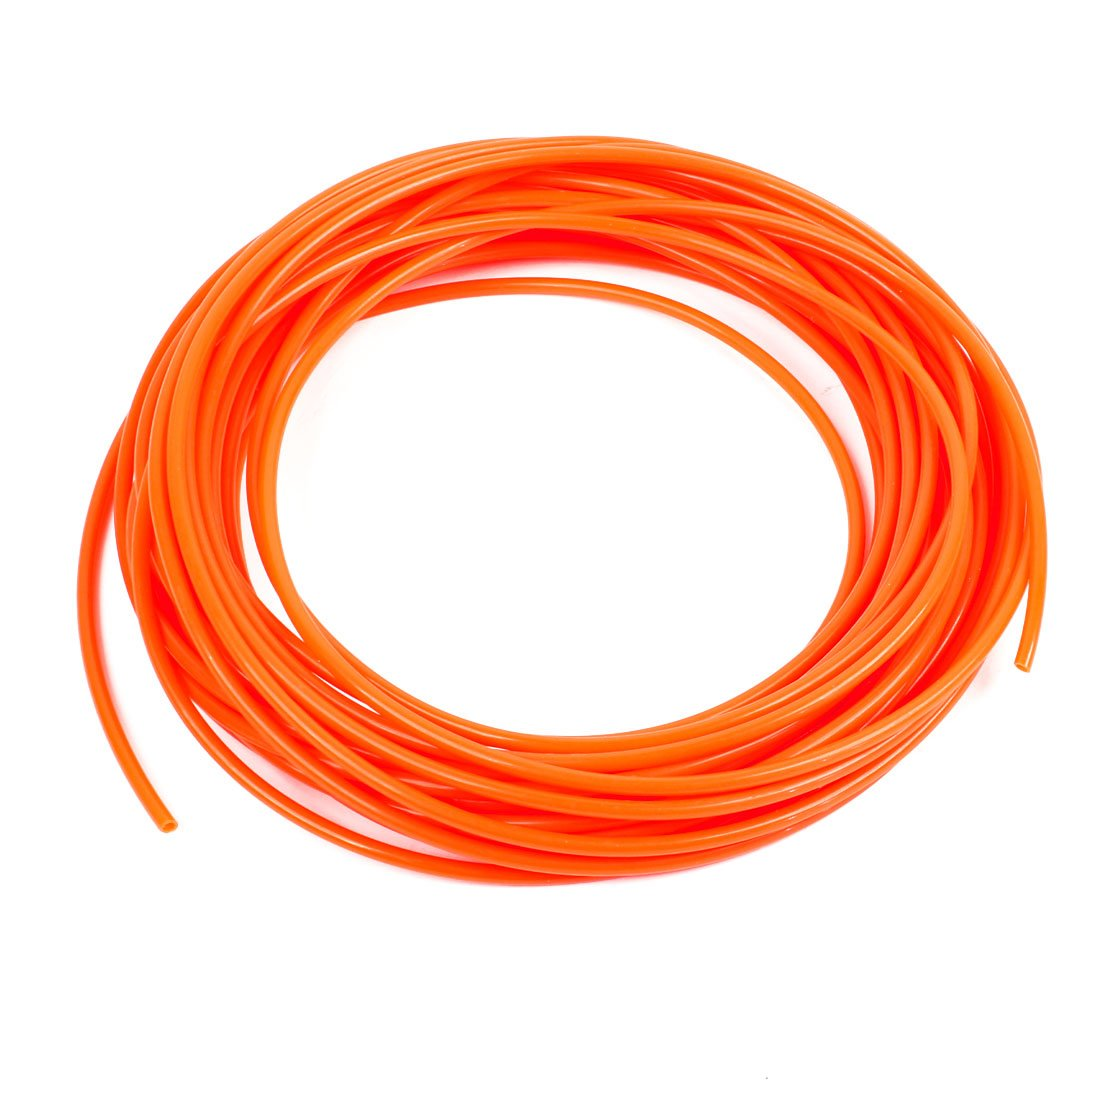 uxcell Pneumatic Hose 4mm OD 2.5mm ID Pneumatic PU Air Tube Hose 15 Meters Orange